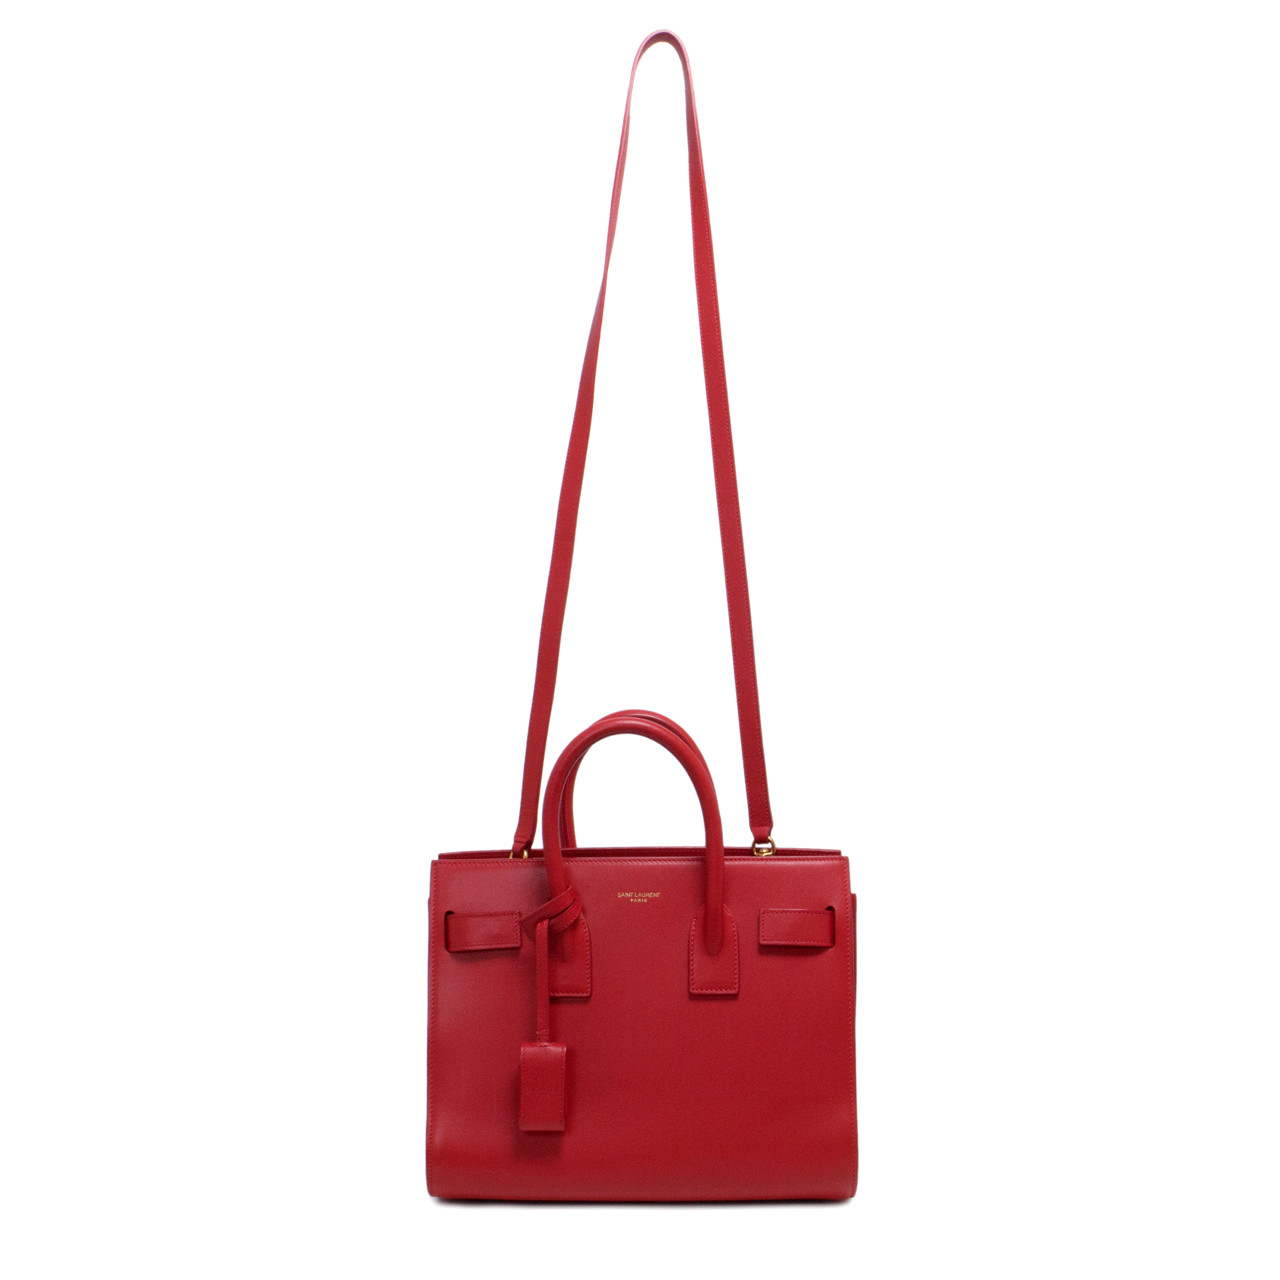 Saint Laurent Red Baby Sac De Jour Bag - modaselle 7358e54b0011a